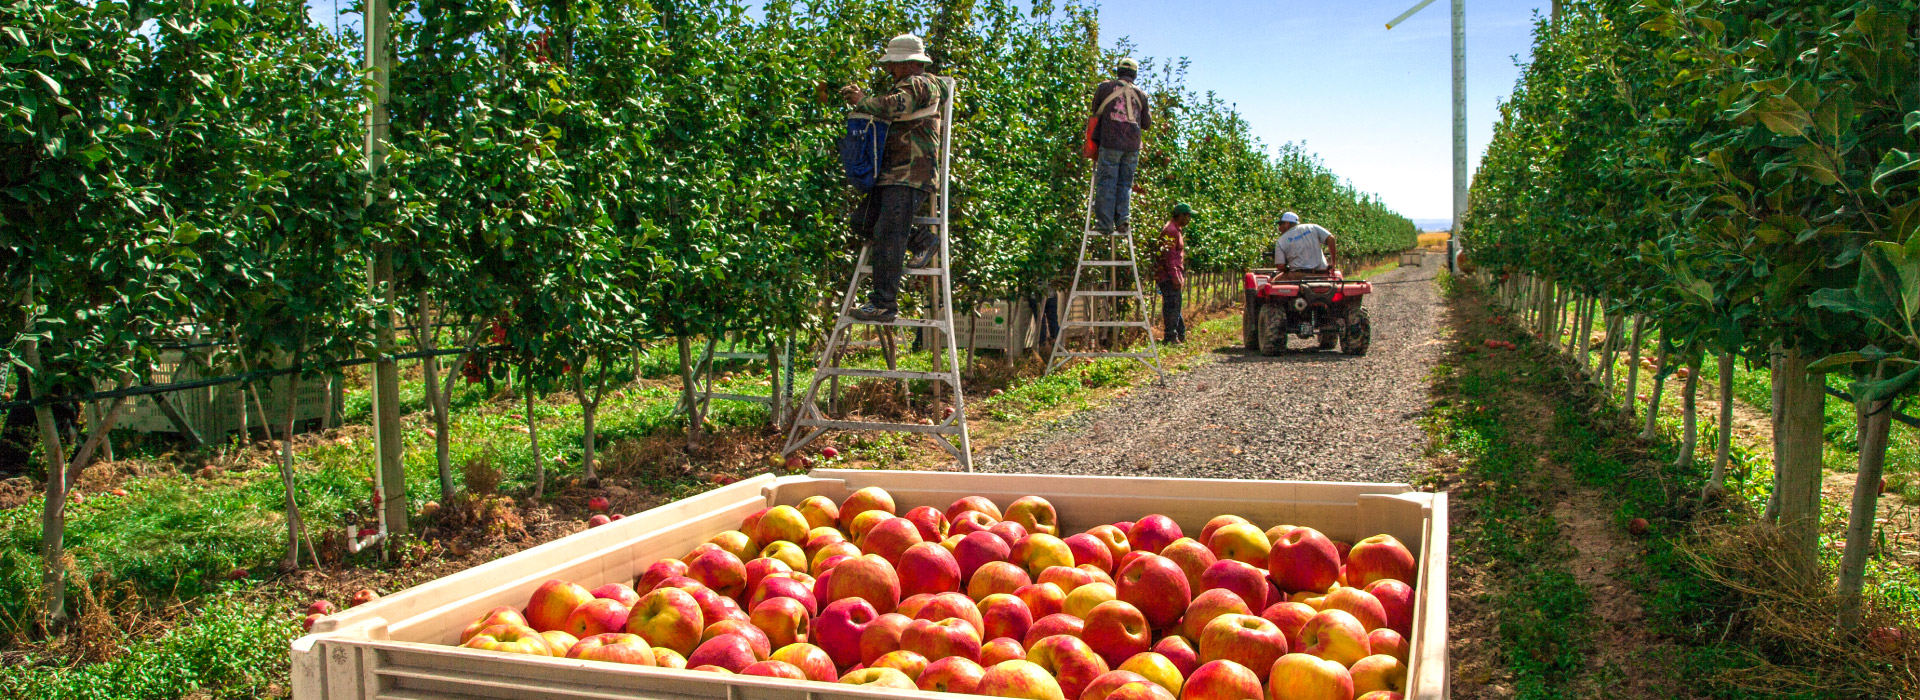 apples being picked in orchard